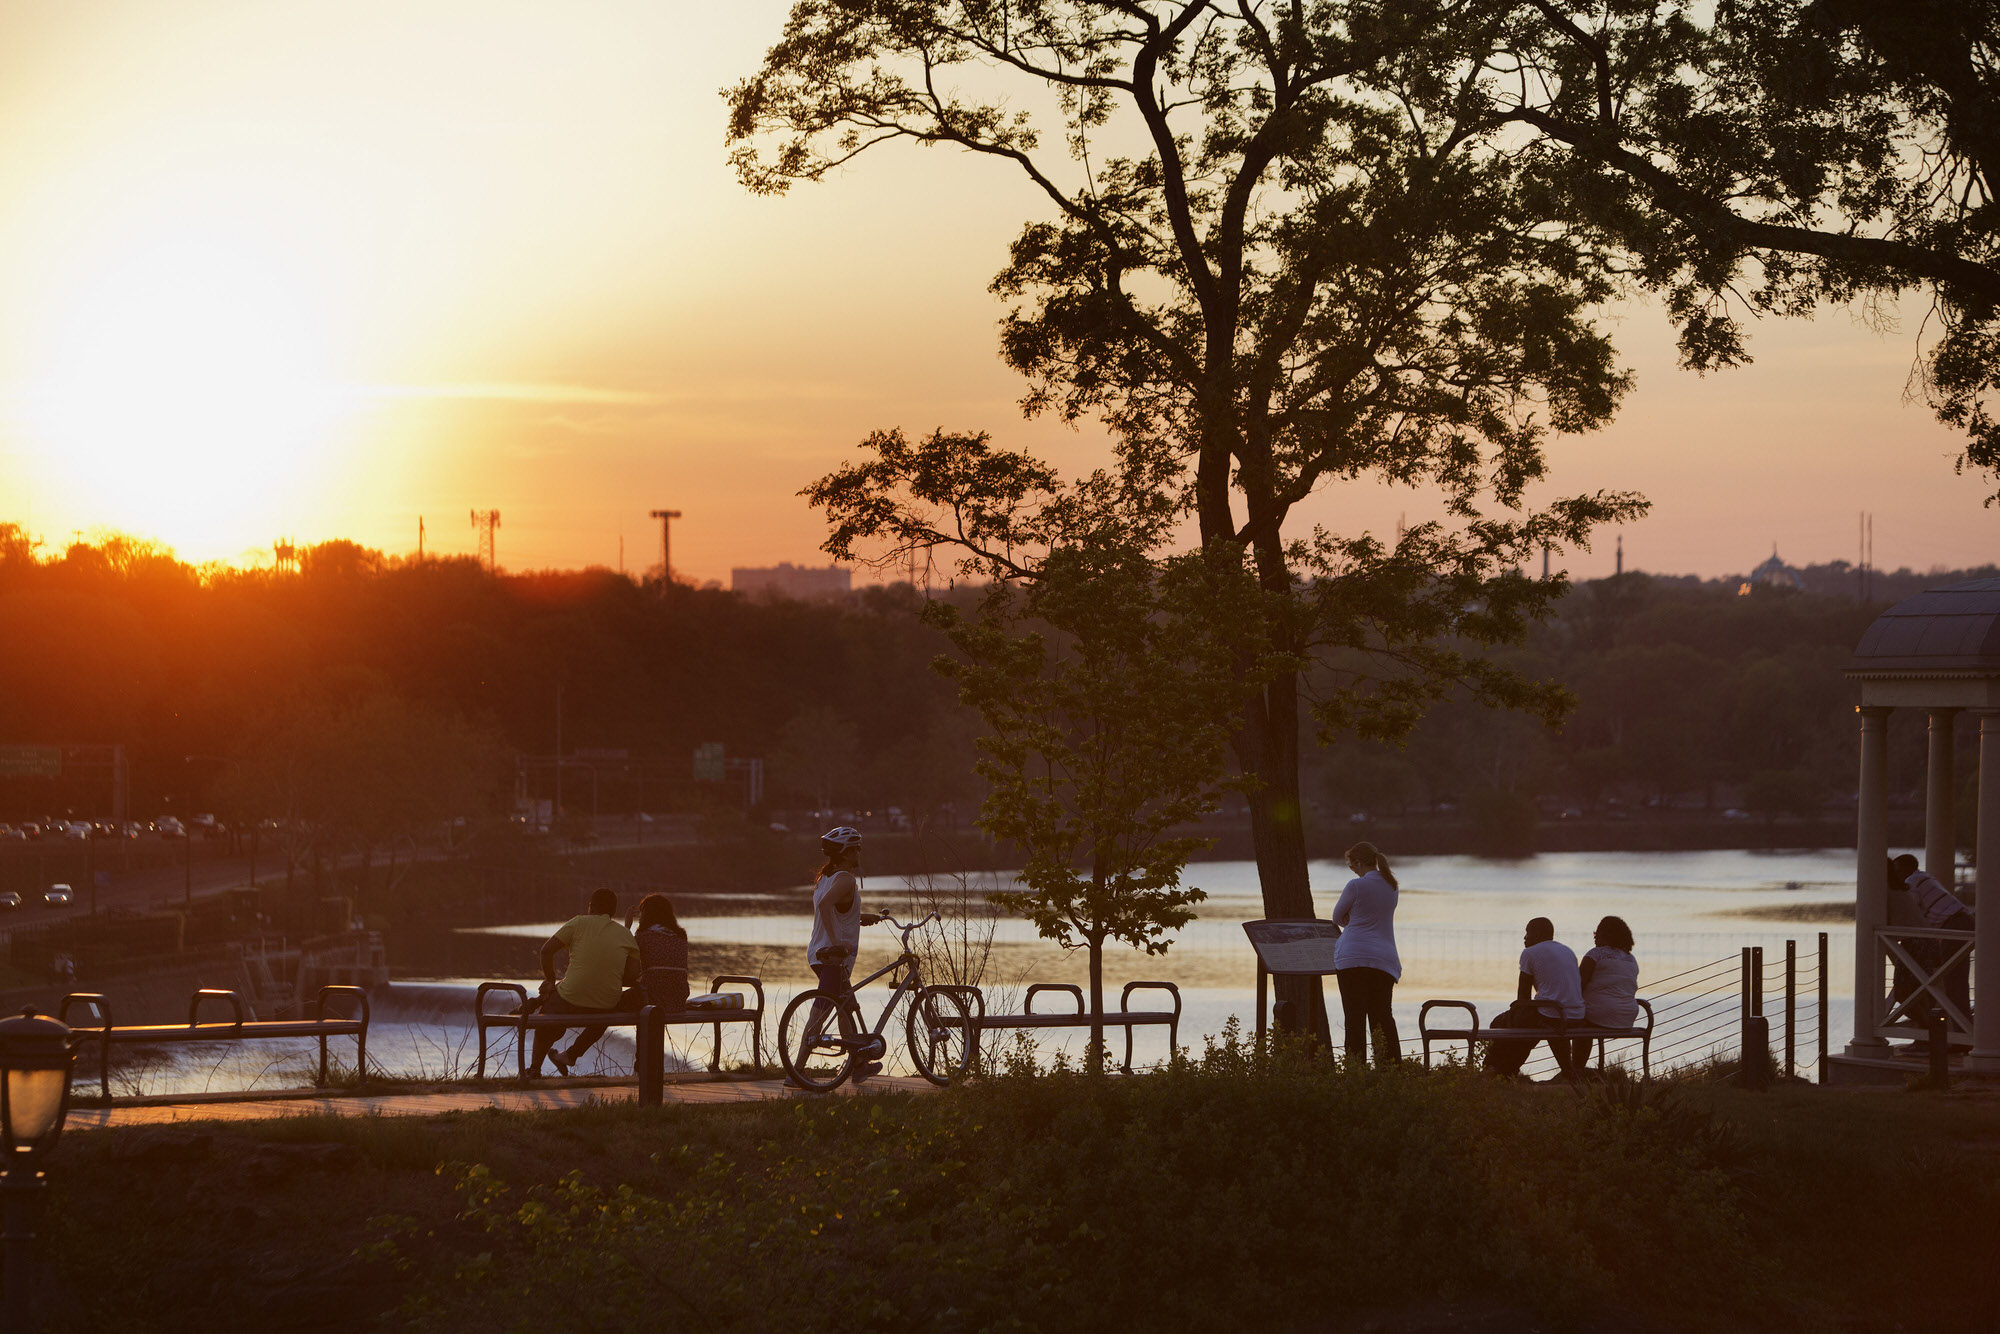 People watch the sunset over the Schuylkill River in Philadelphia, Pennsylvania, U.S., on Friday, May 8, 2015. Philadelphia, the largest city in the Commonwealth of Pennsylvania, is the center of the state's economic activity as well as home to seven Fortune 1000 companies. Photographer: Victor J. Blue/Bloomberg